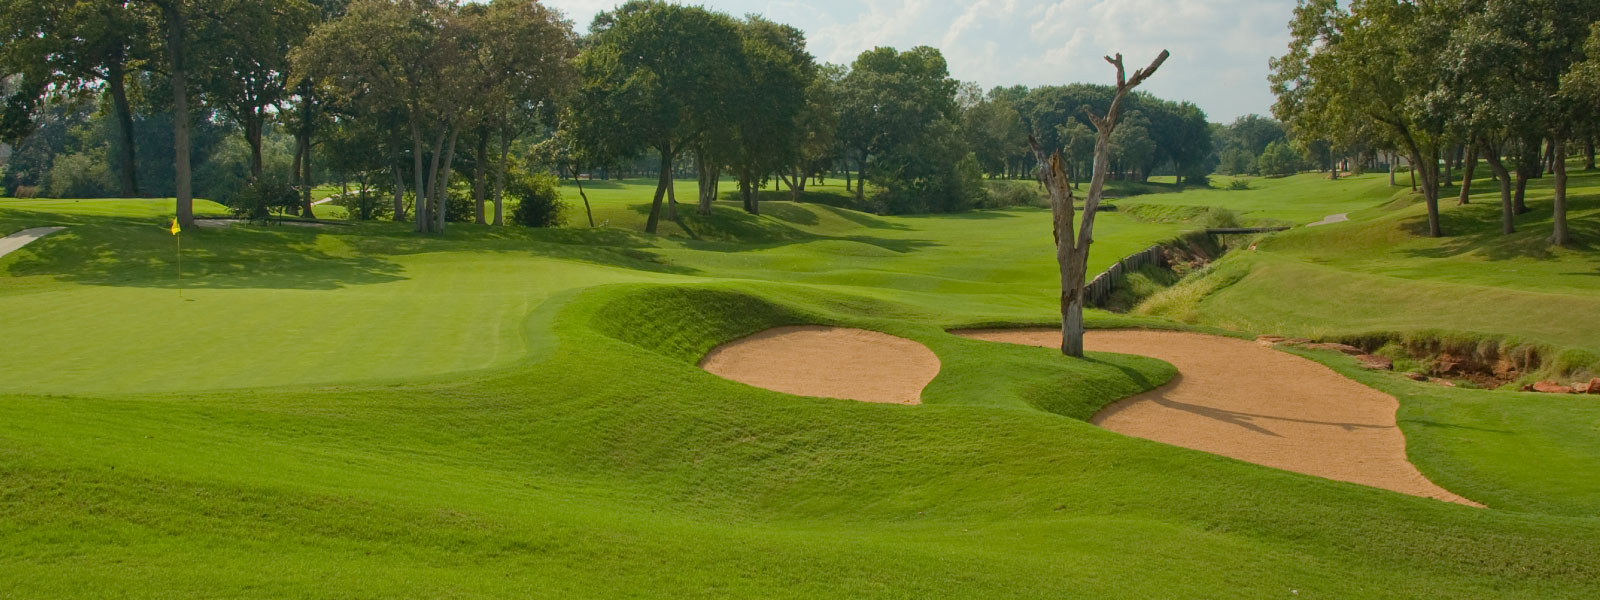 Course List - DYE DESIGNS on golf courses in vermont map, golf courses in tucson map, golf courses in indiana map, golf courses in cancun map,